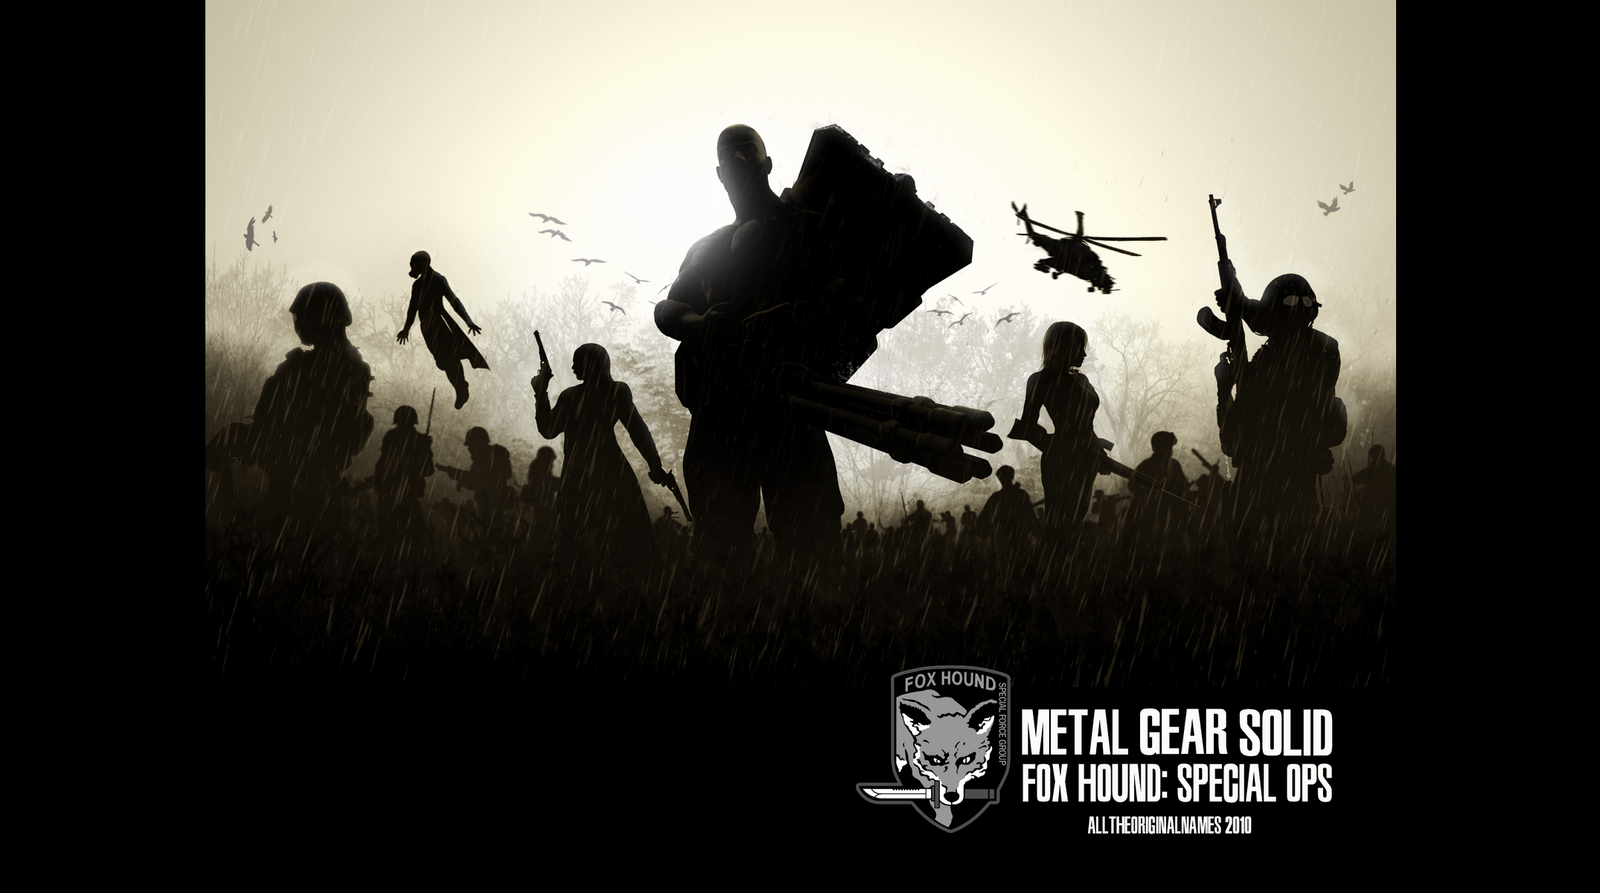 Foxhound metal gear solid wallpapers